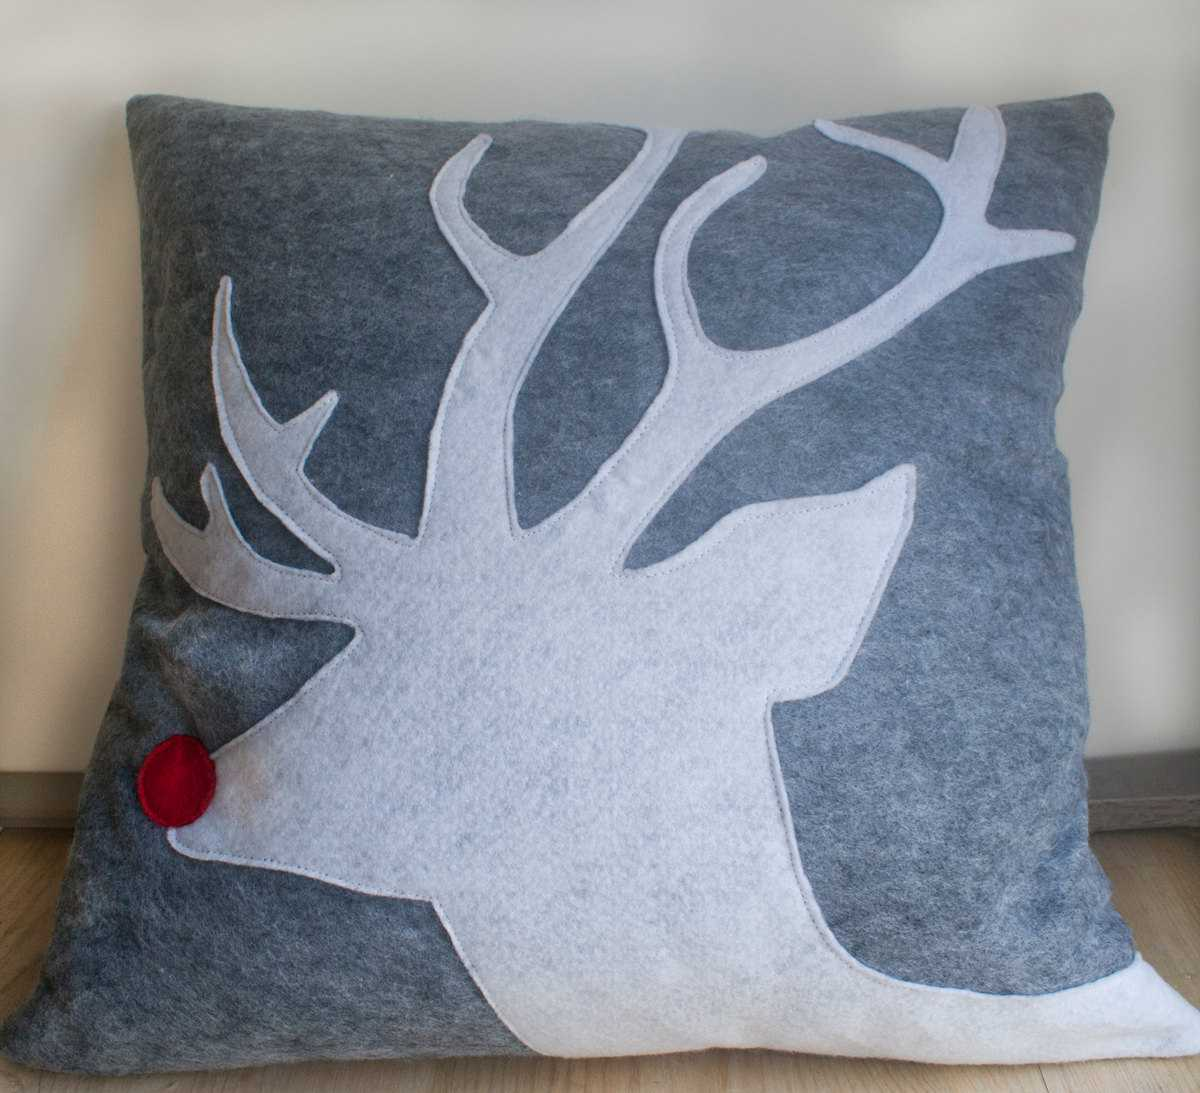 26 Awesome Handmade Christmas Pillows and Covers & 26 Awesome Handmade Christmas Pillows and Covers - Style Motivation pillowsntoast.com